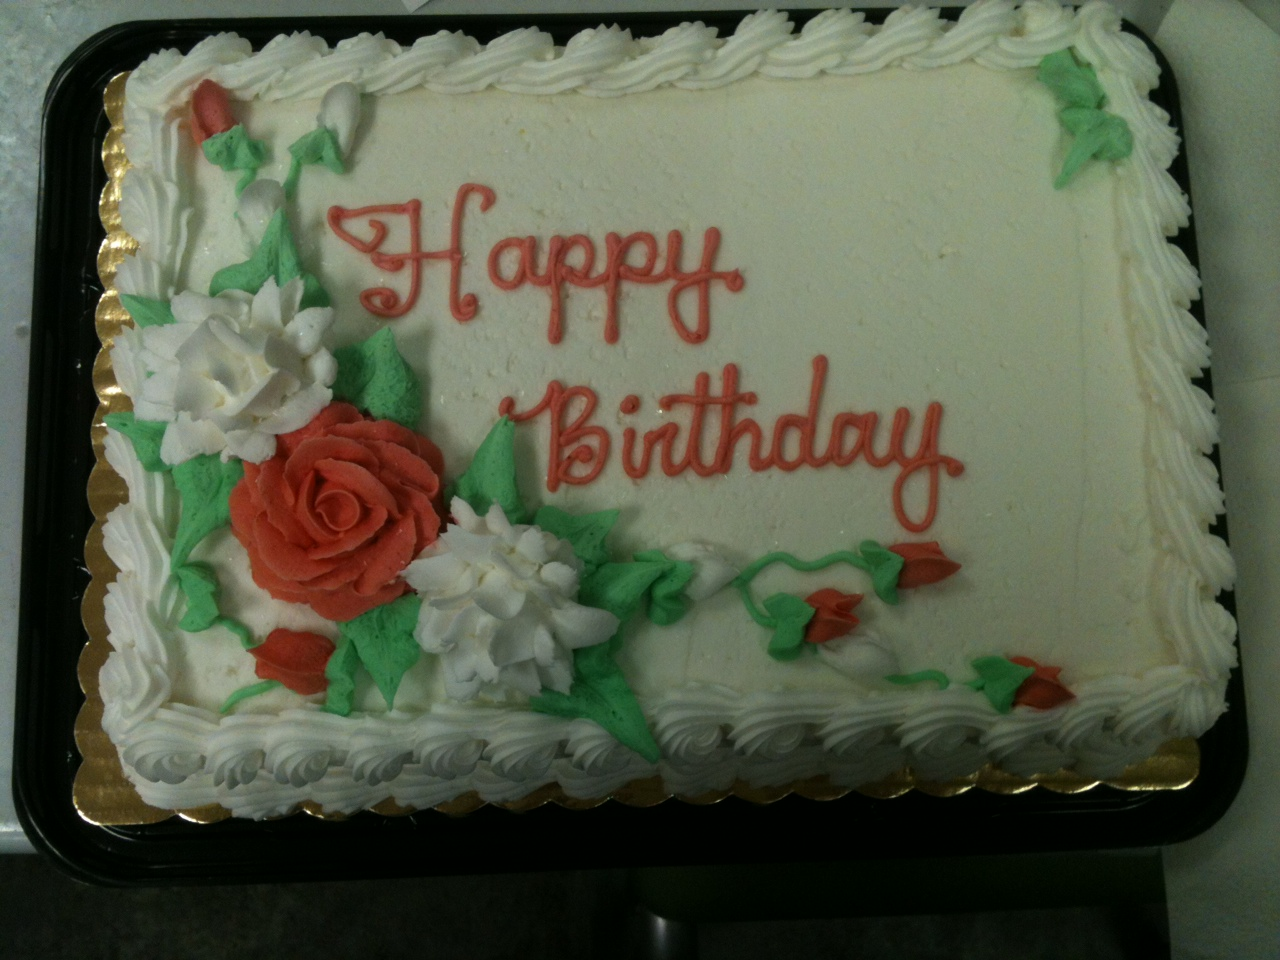 rectangle cake with Happy Birthday writen on it with flowers clustered in the bottom left corner